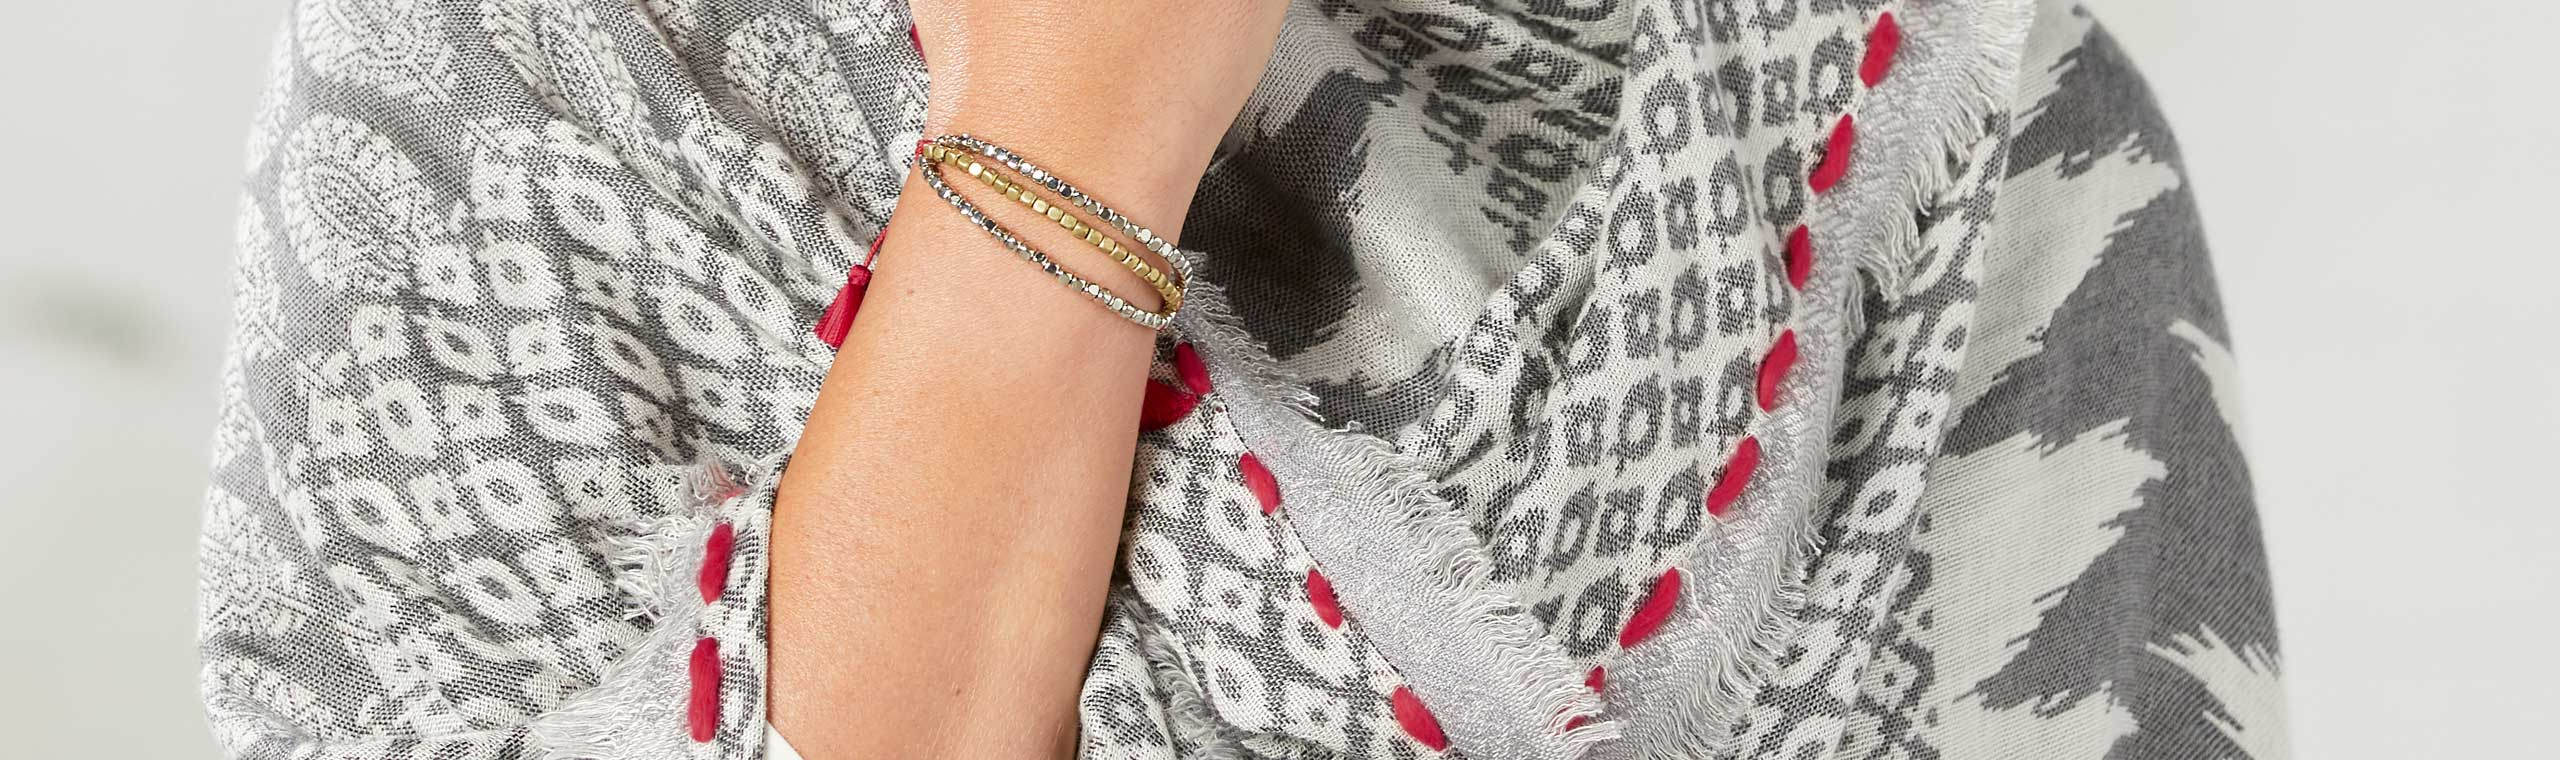 Woman wearing gray wrap accented with bright red threads and gold and silver beaded bracelet with bright red threads